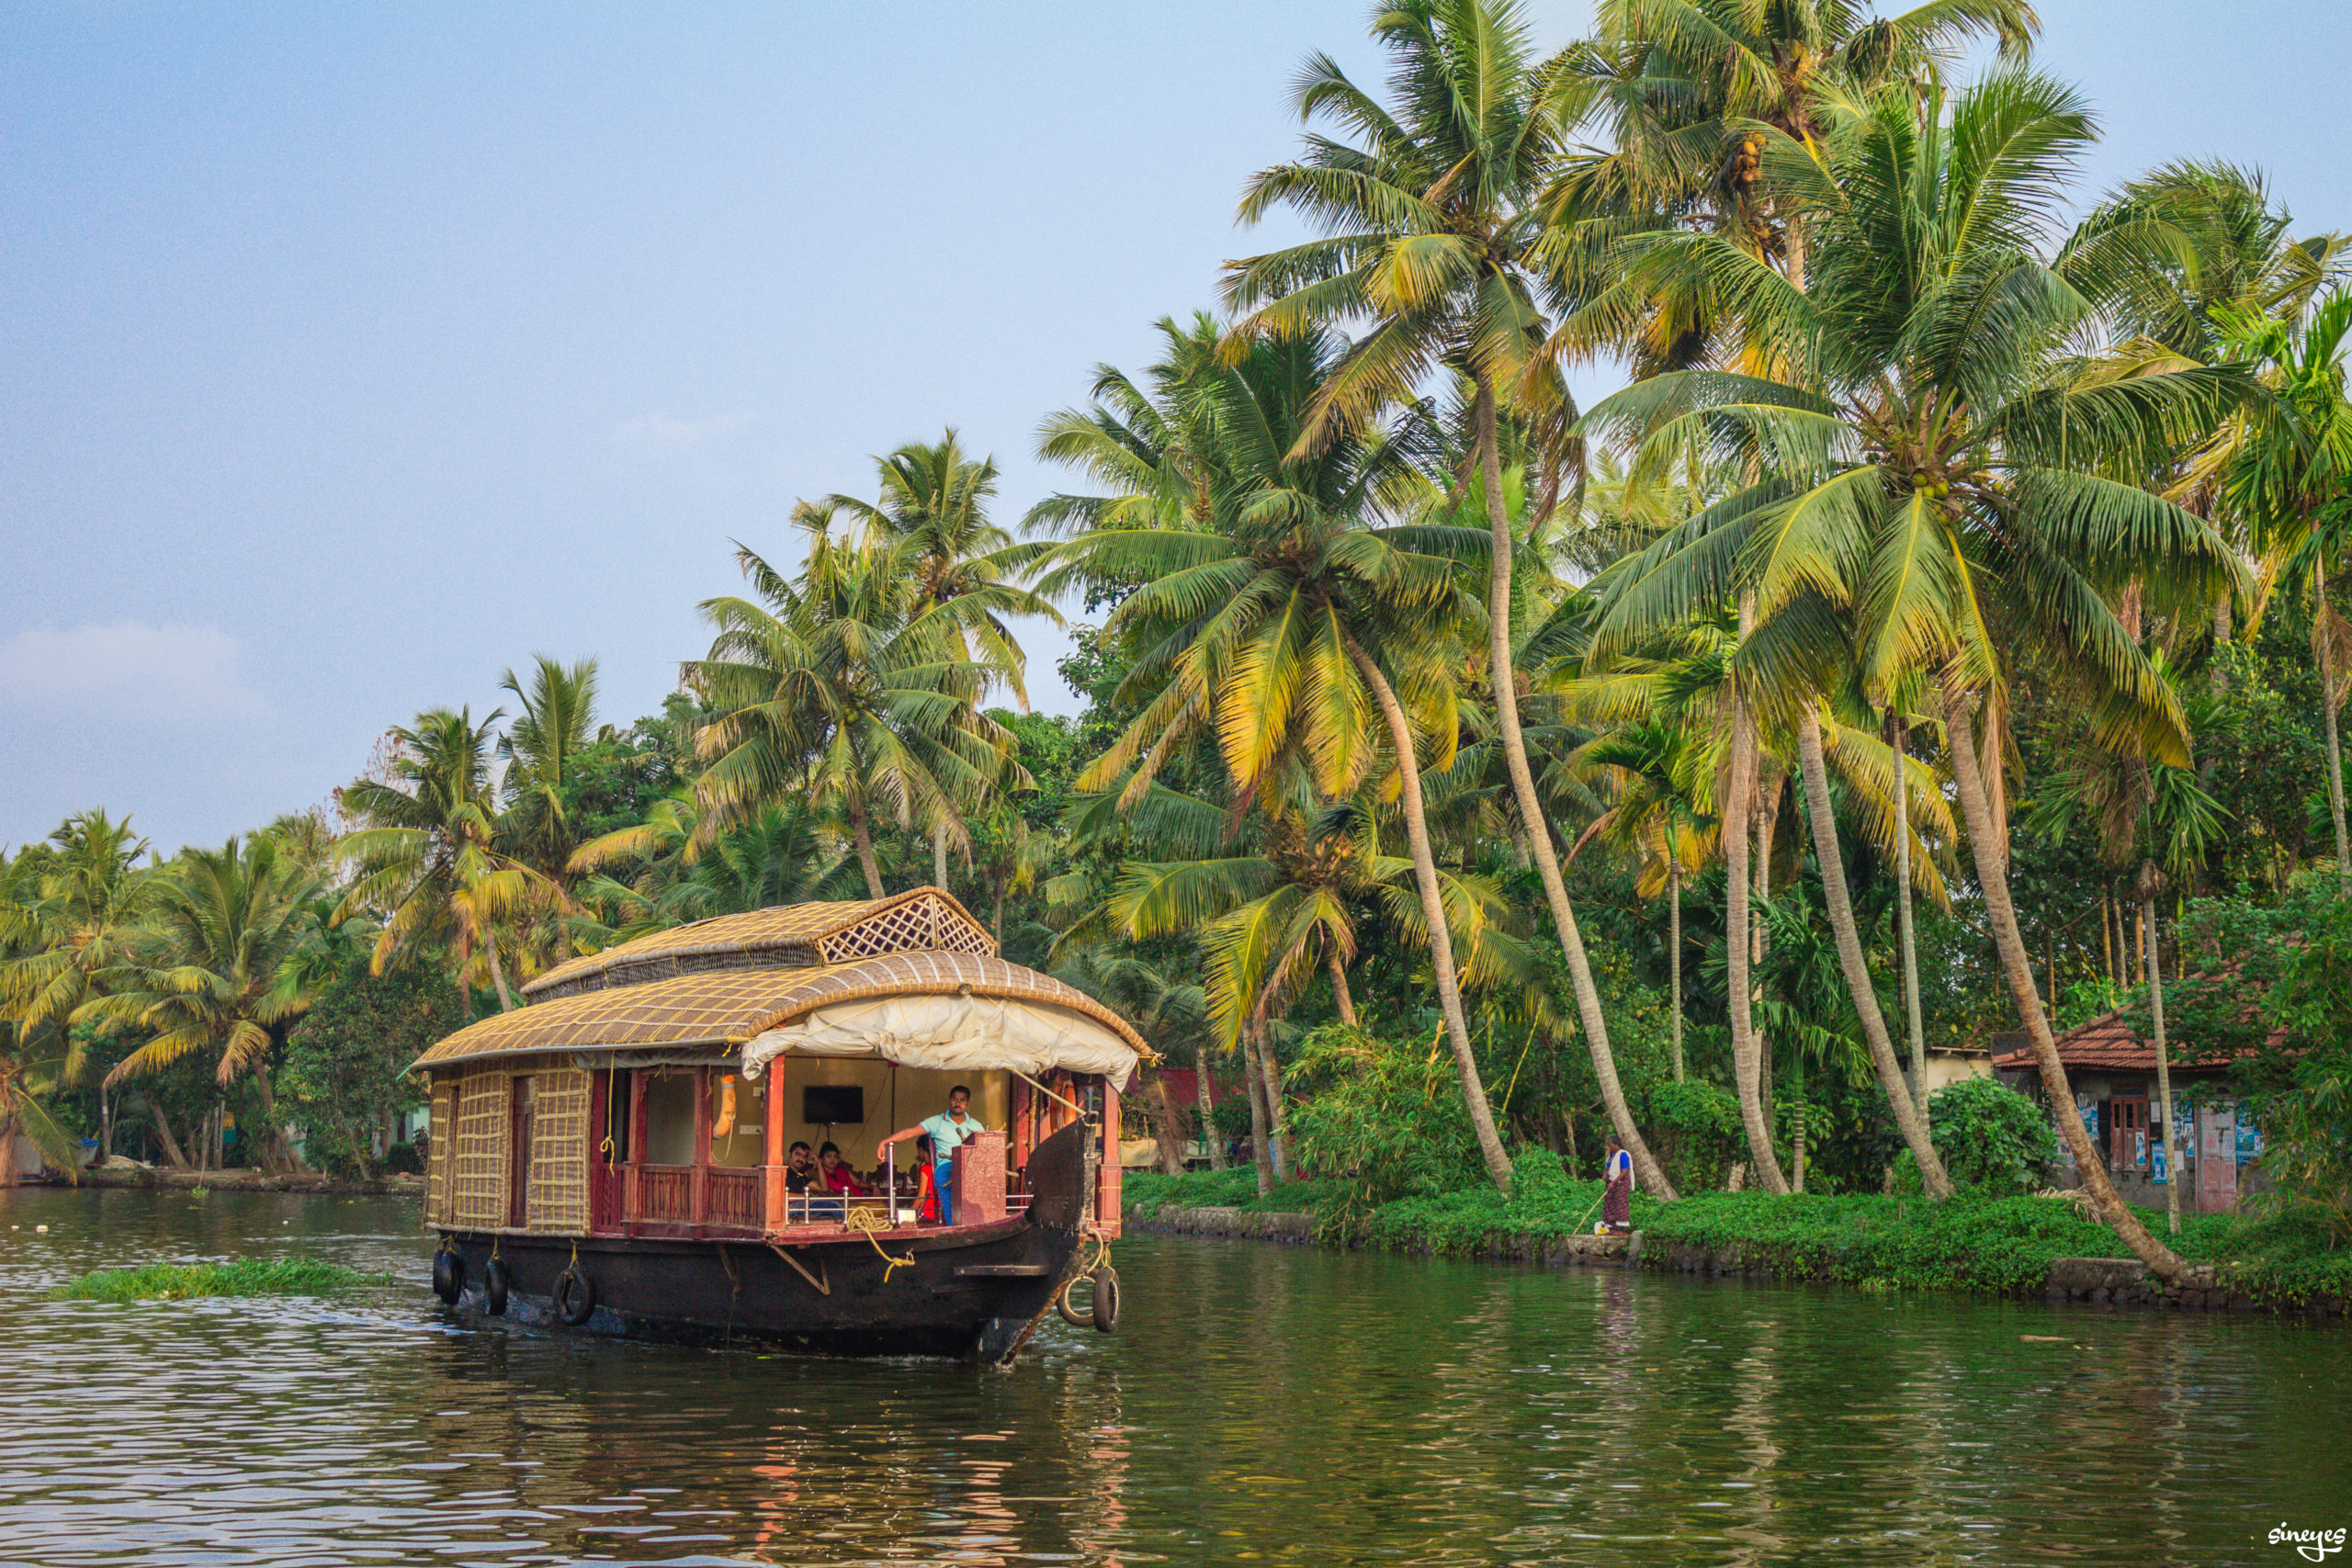 India's Venice of the east - Alleppey, Kerala